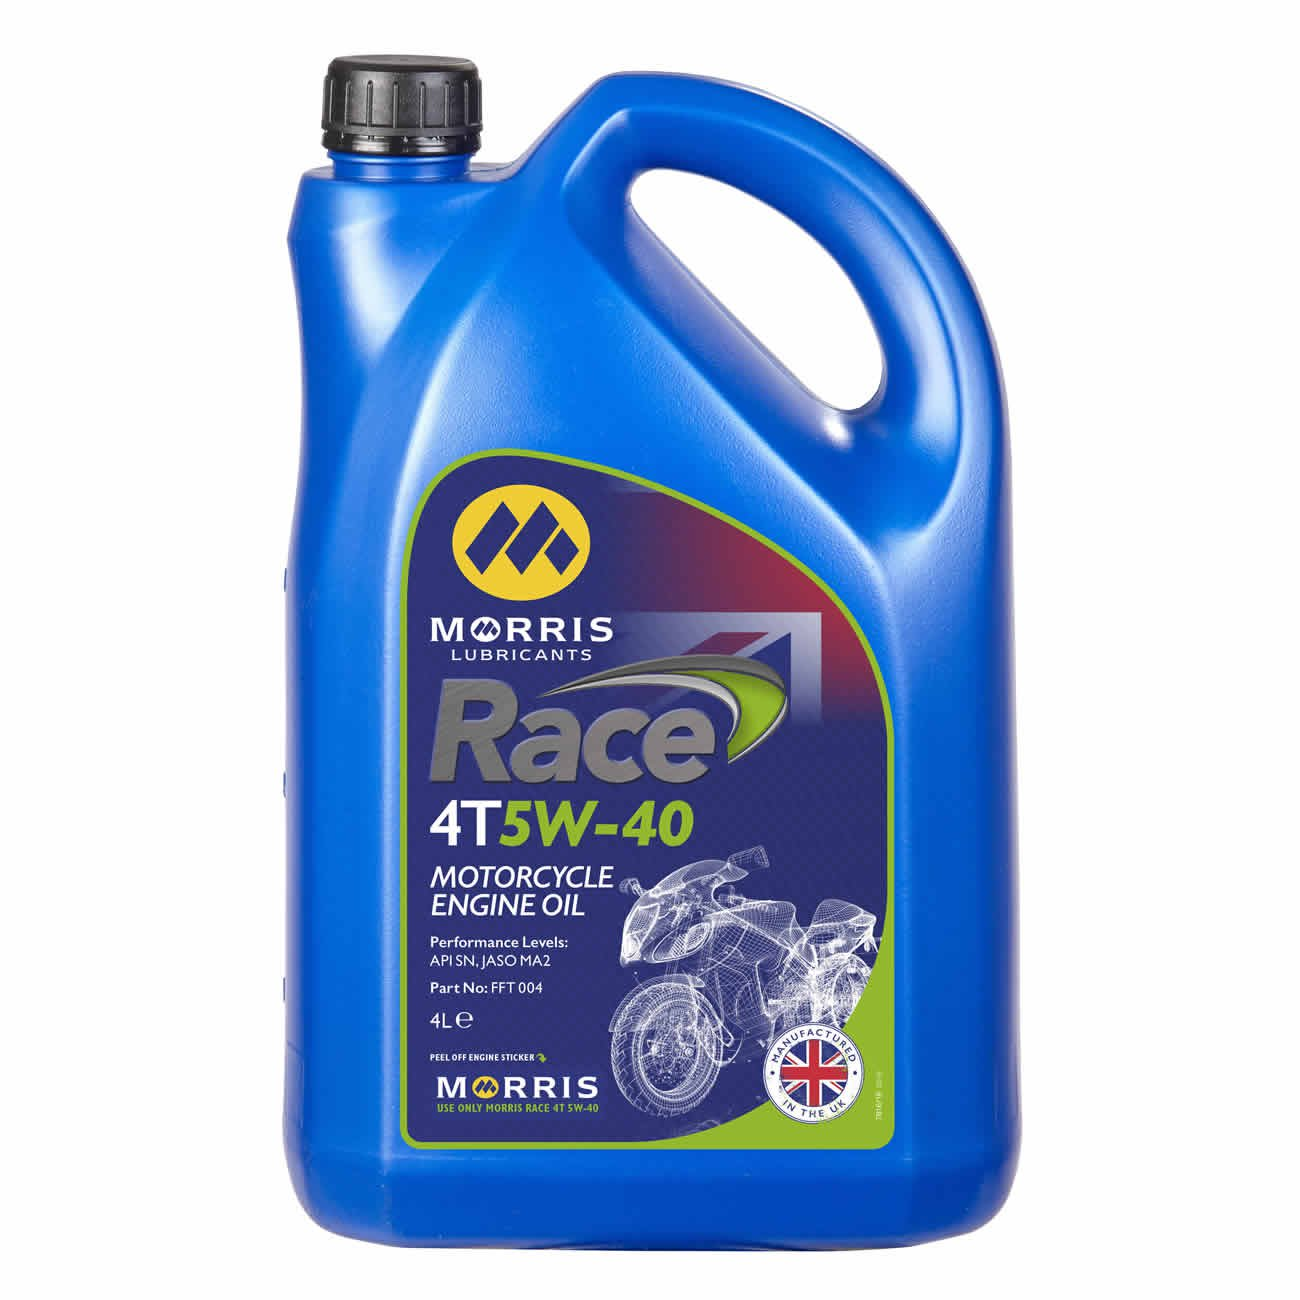 Race 4T 5W-40, Engine Oil, Morris Lubricants - Averys Motorcycles